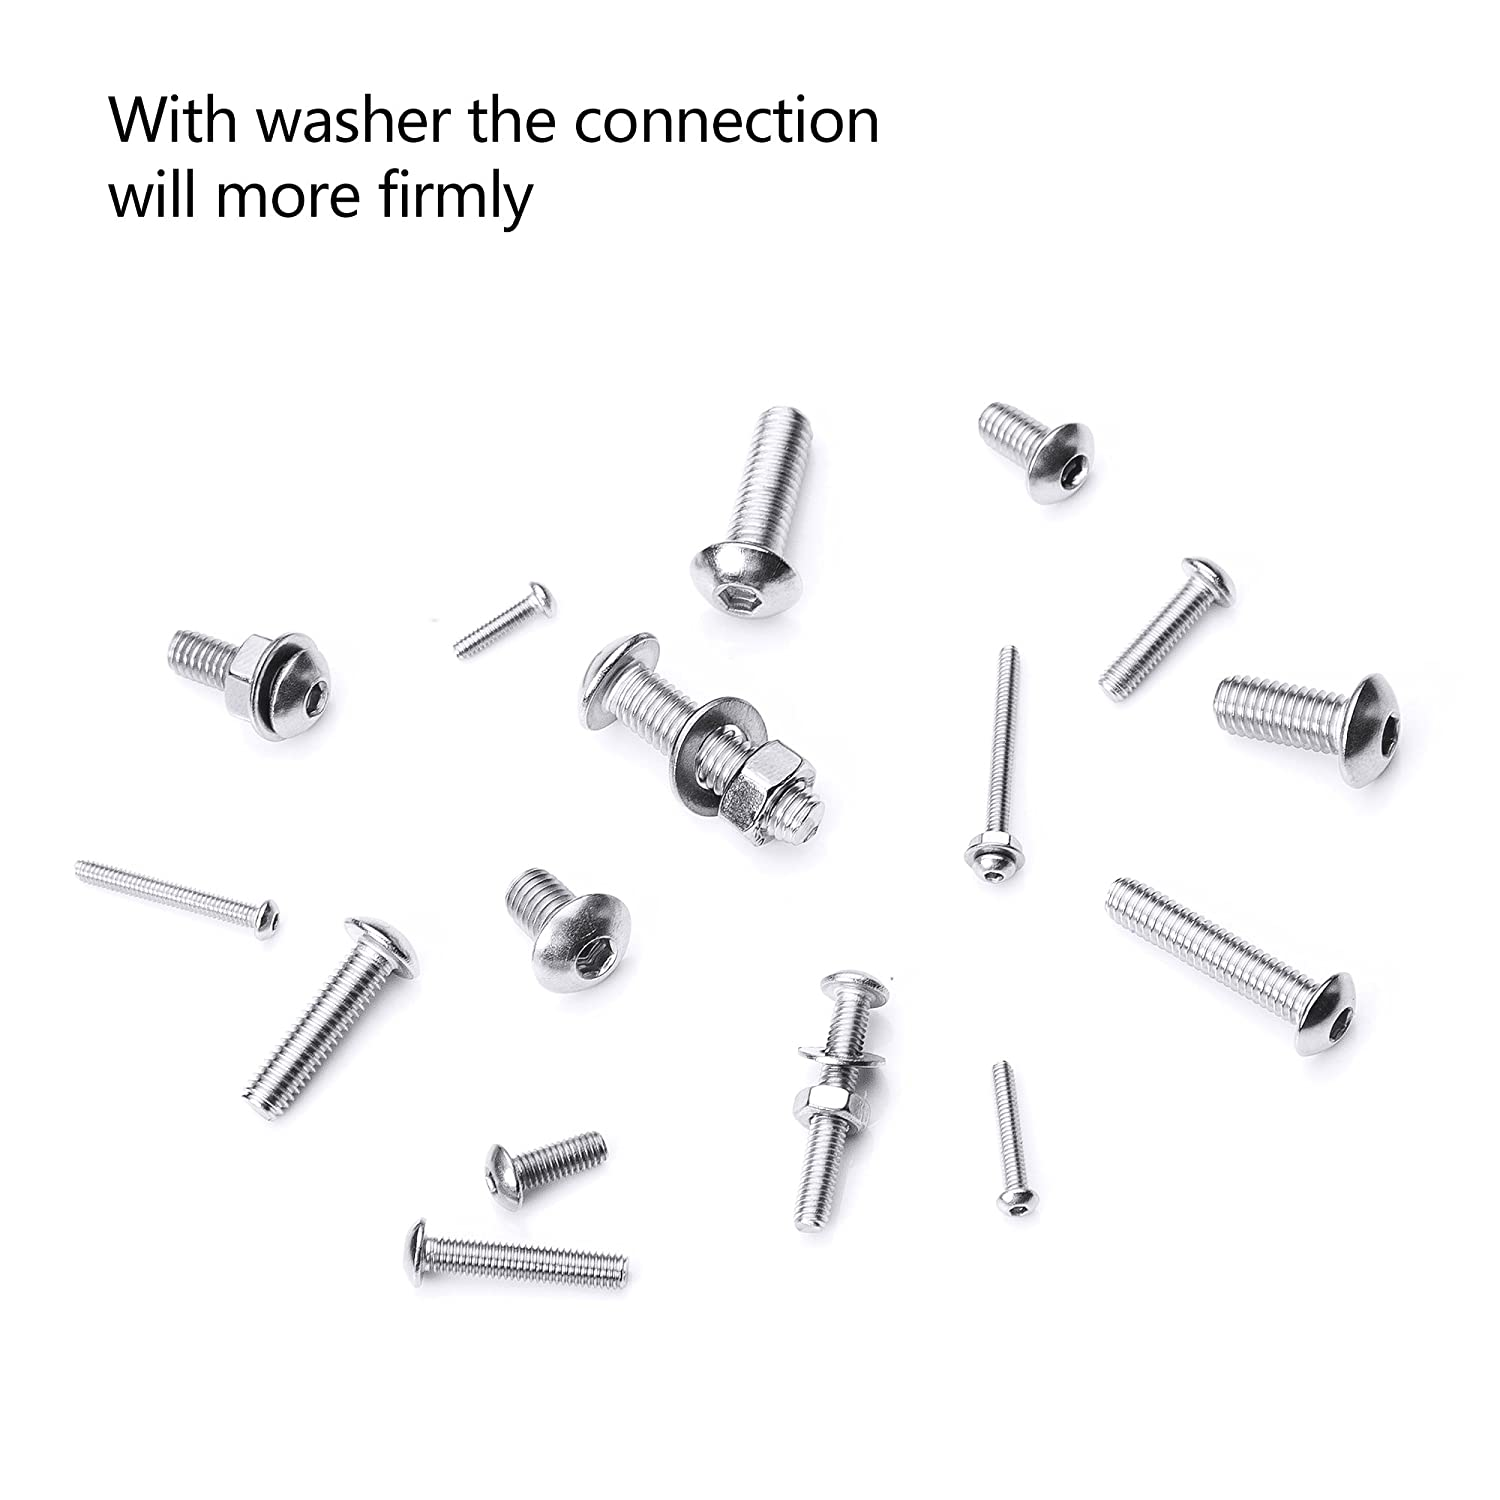 880Pcs M2 M3 M4 M5 Stainless Steel Precise Metric Hex Button Head Cap Self Tapping Screws,Round Flat Socket Bolts and Nuts Set and Washers Assortment Kit Wrench Button Head Cap